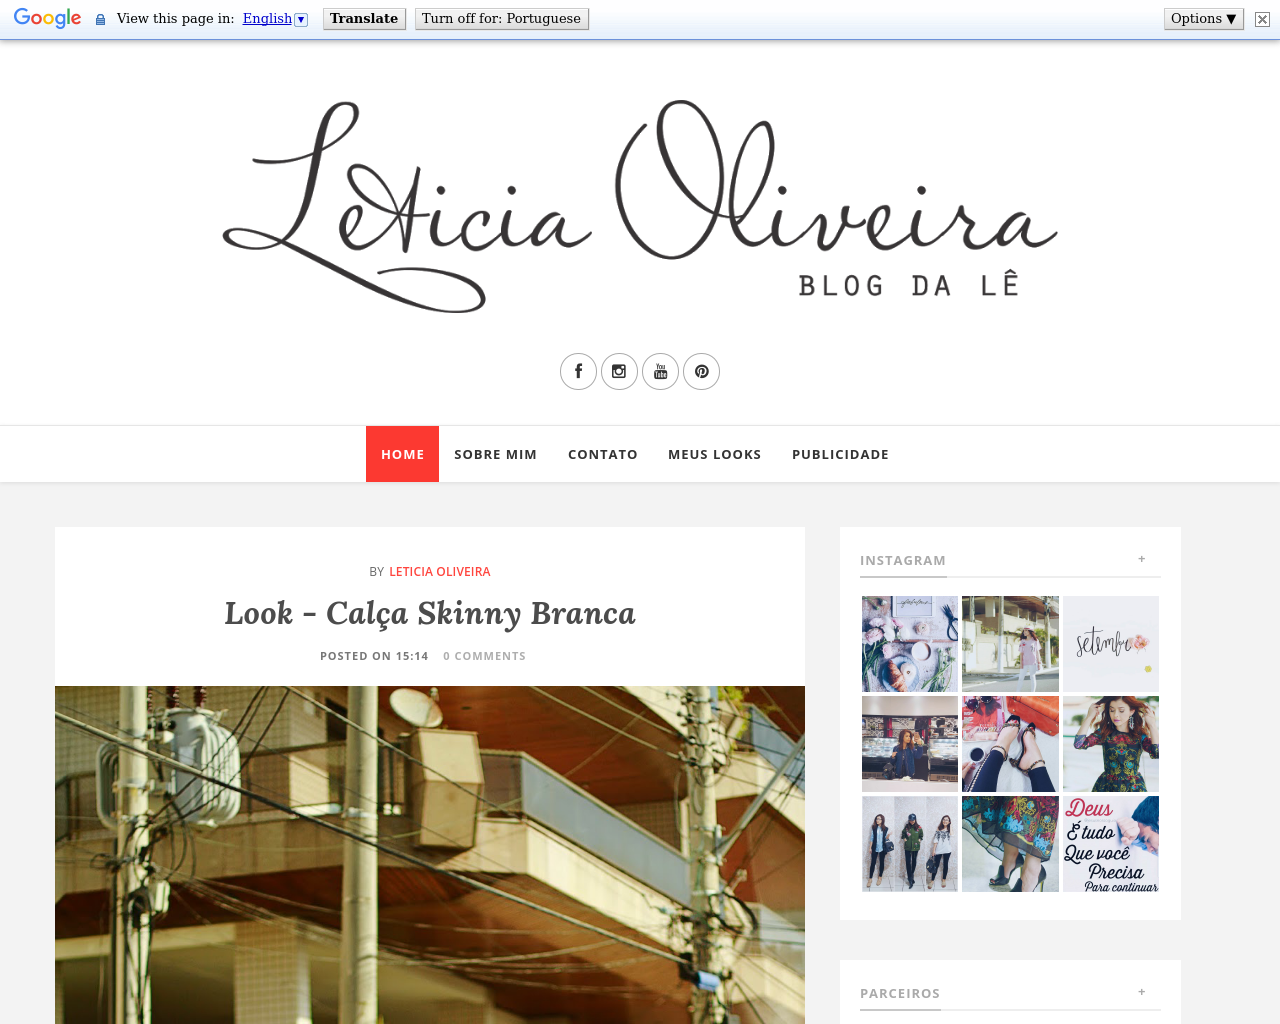 Blog-Da-Le-Oliveira-Advertising-Reviews-Pricing